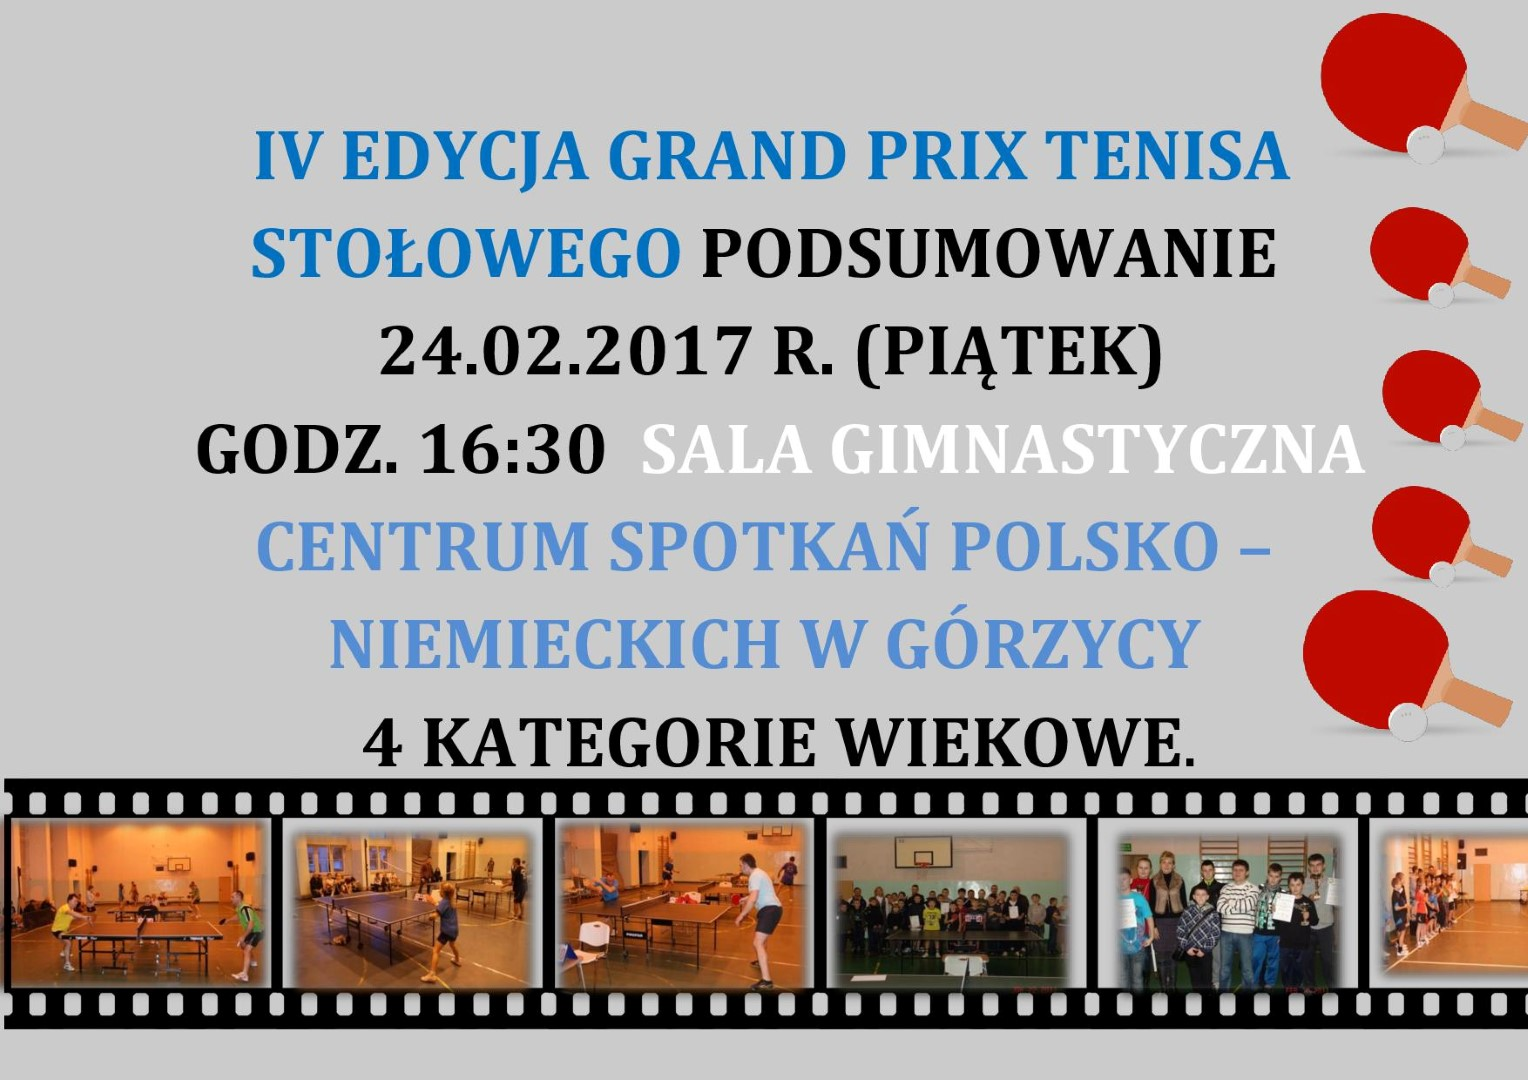 You are browsing images from the article: Podsumowanie GRAND PRIX w tenisie sto³owym!